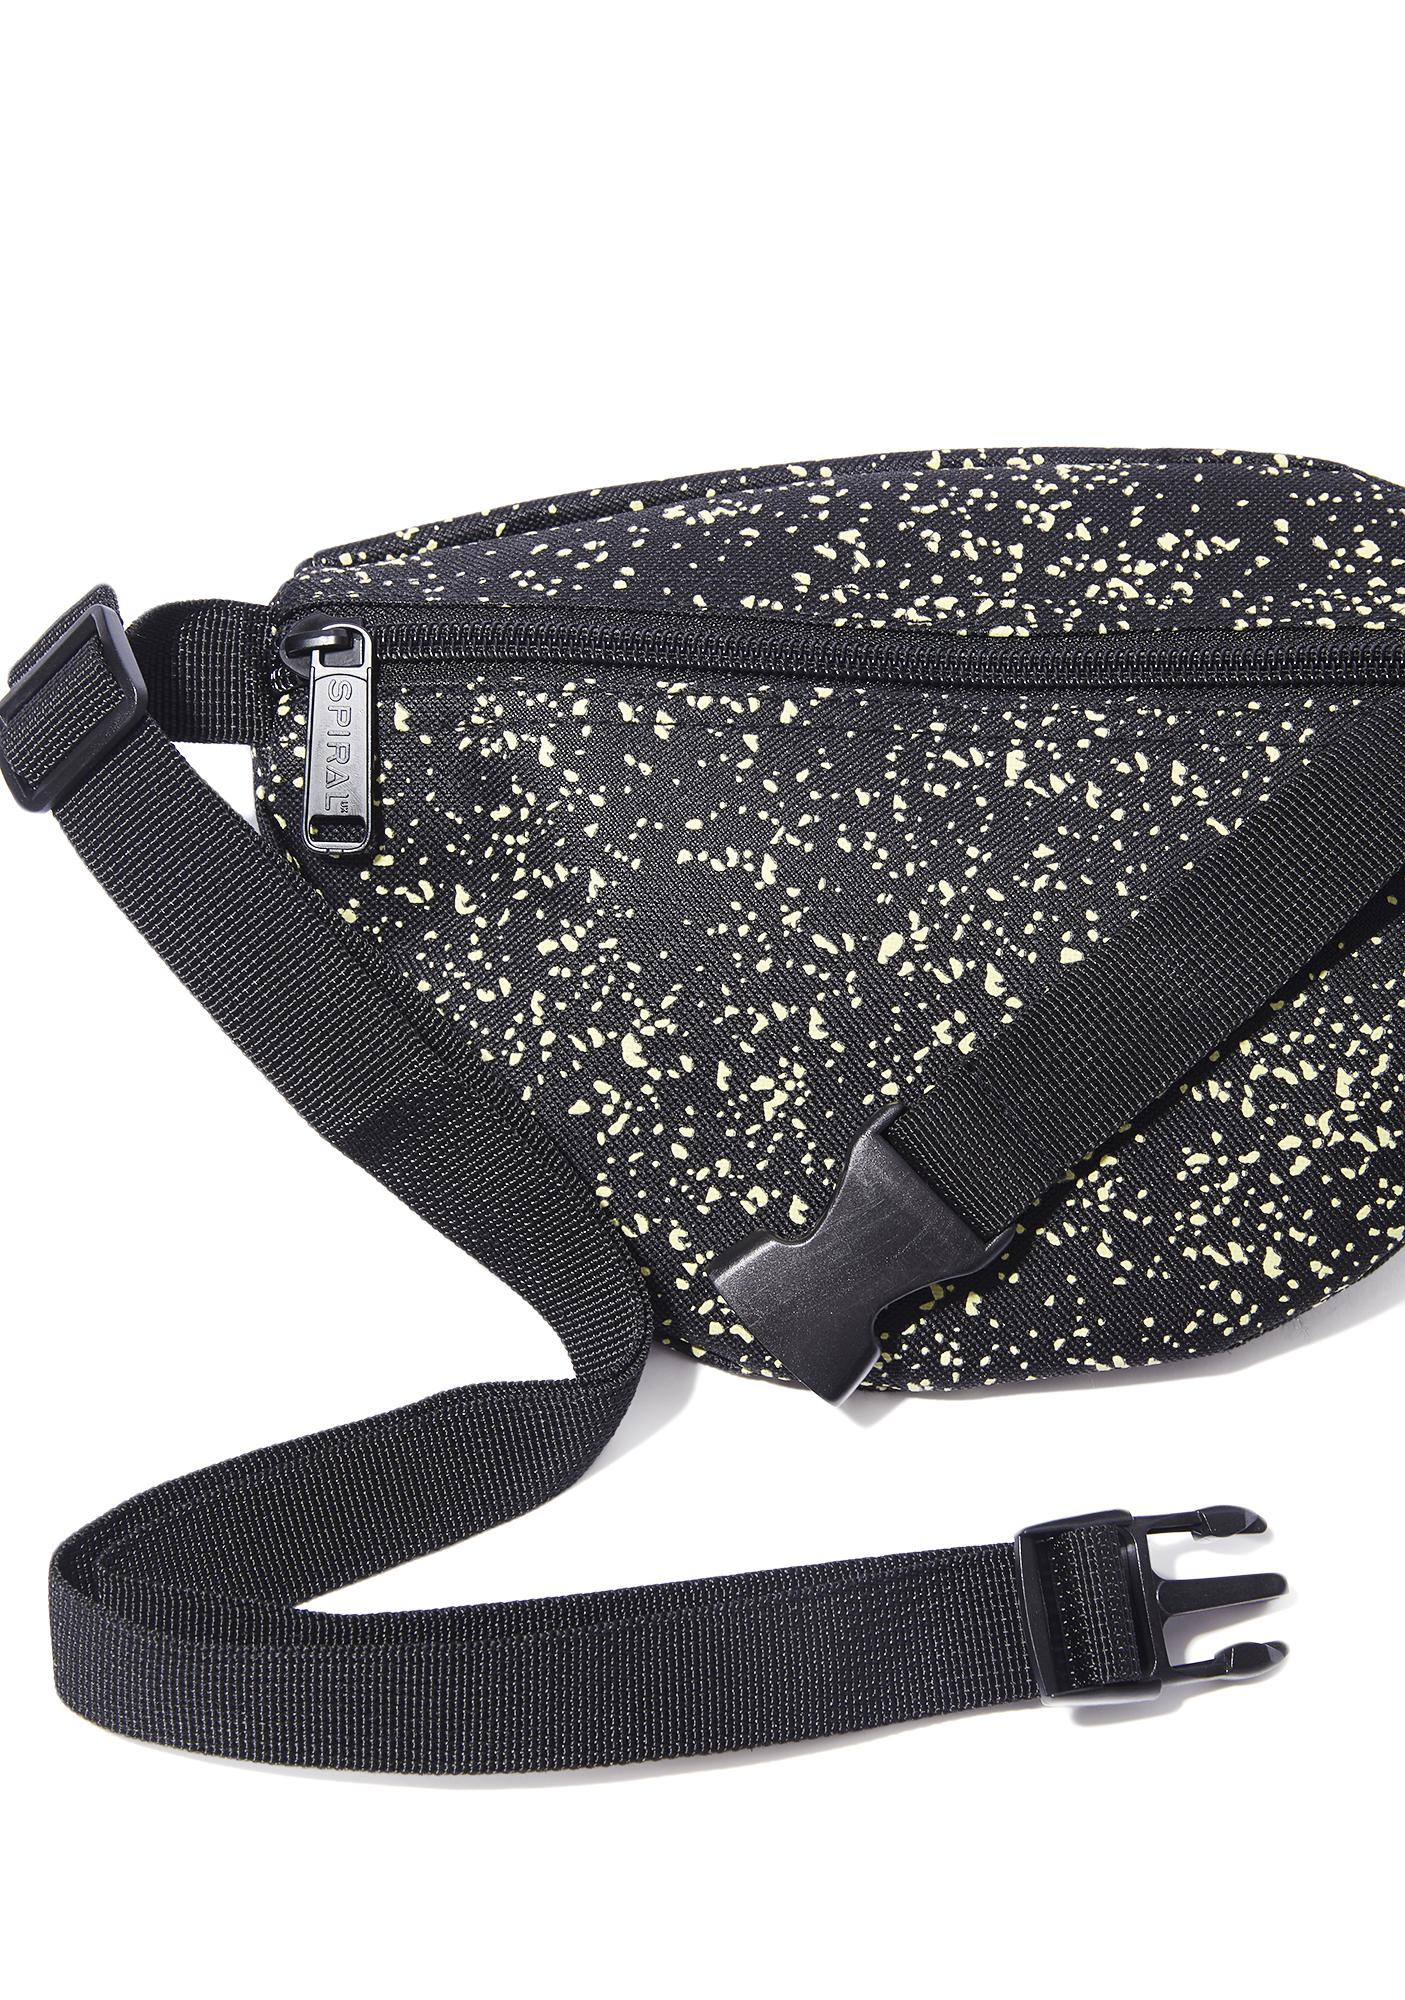 Spiral UK Speckles Harvard Bum Bag